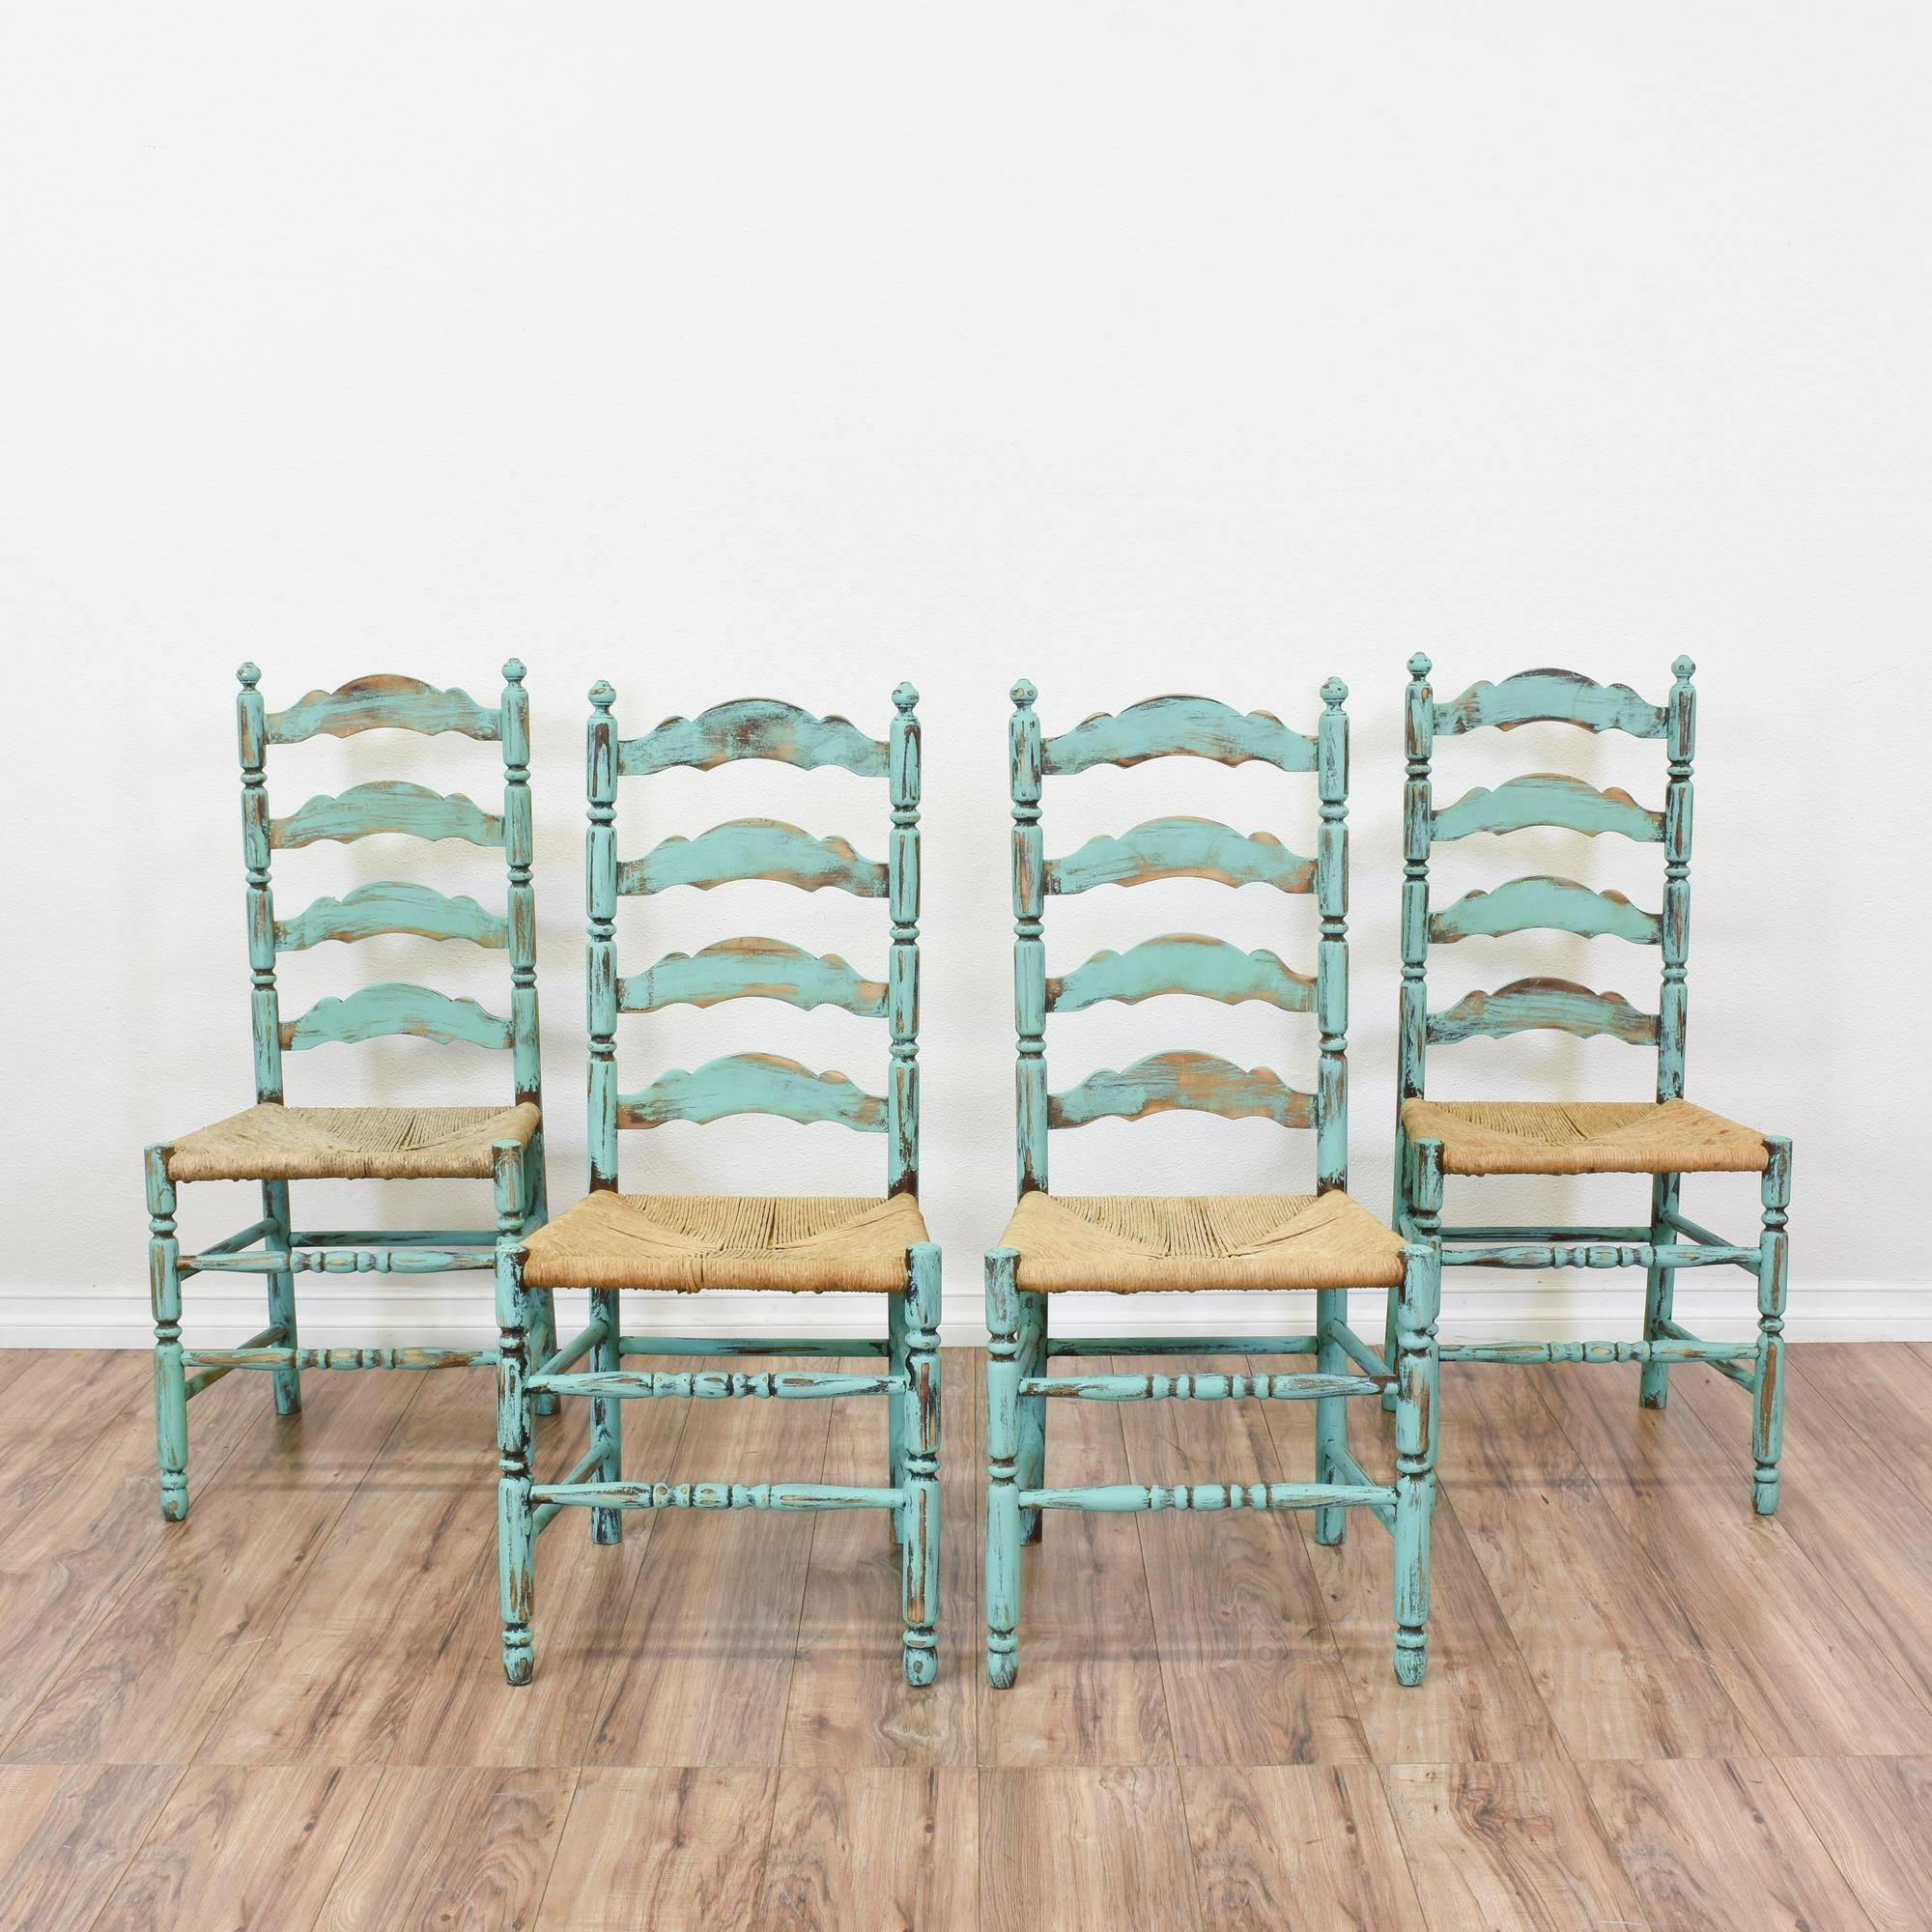 this set of 4 shabby chic ladder back chairs are featured in a